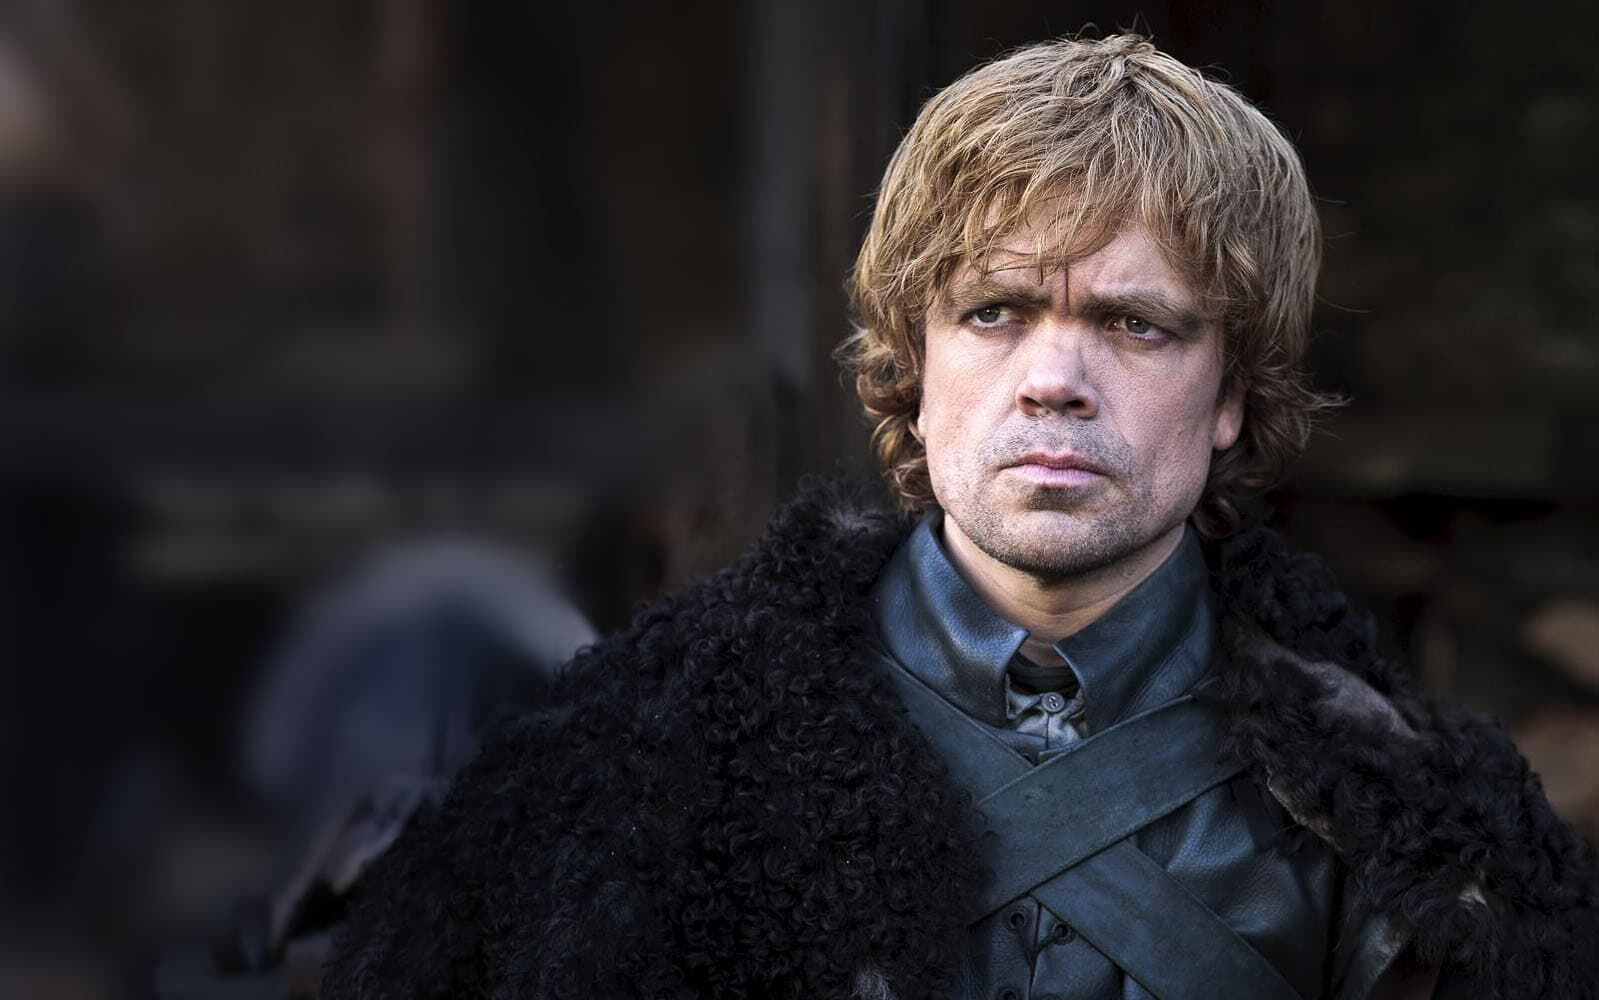 HBO sets up season 8 promotional website, Tyrion Lannister retrospective